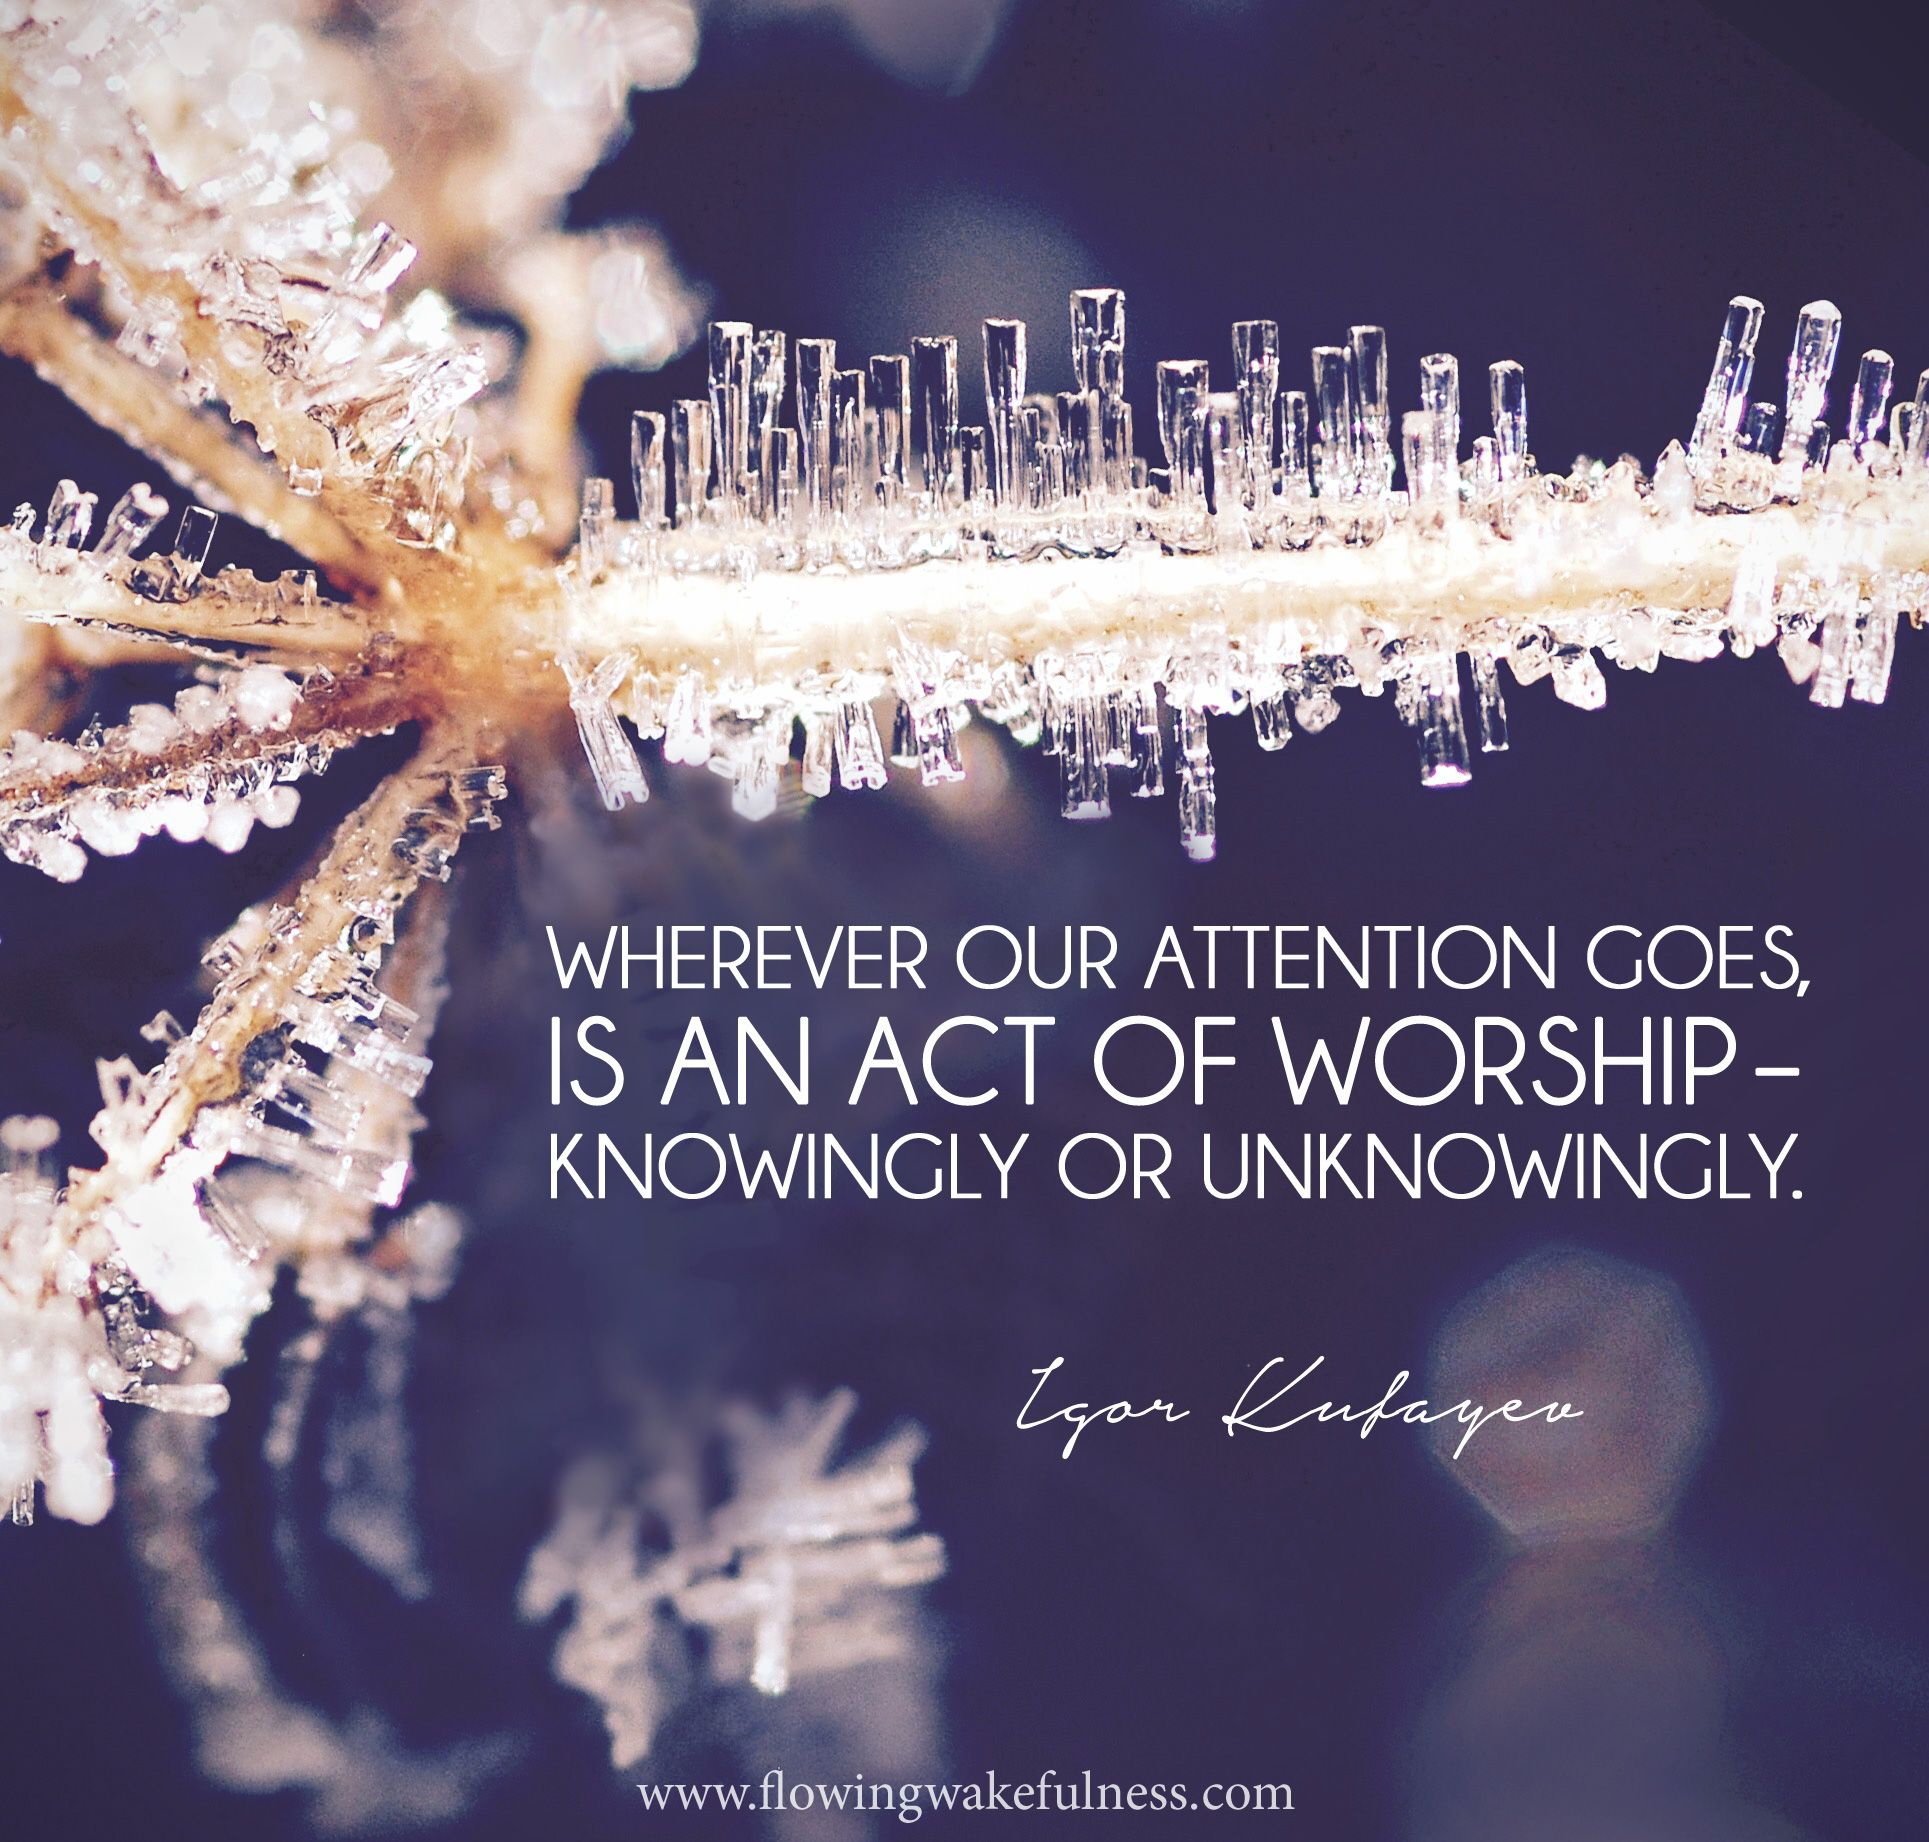 Byron Katie Quotes Wherever Our Attention Goes Is An Act Of Worship  Knowingly Or